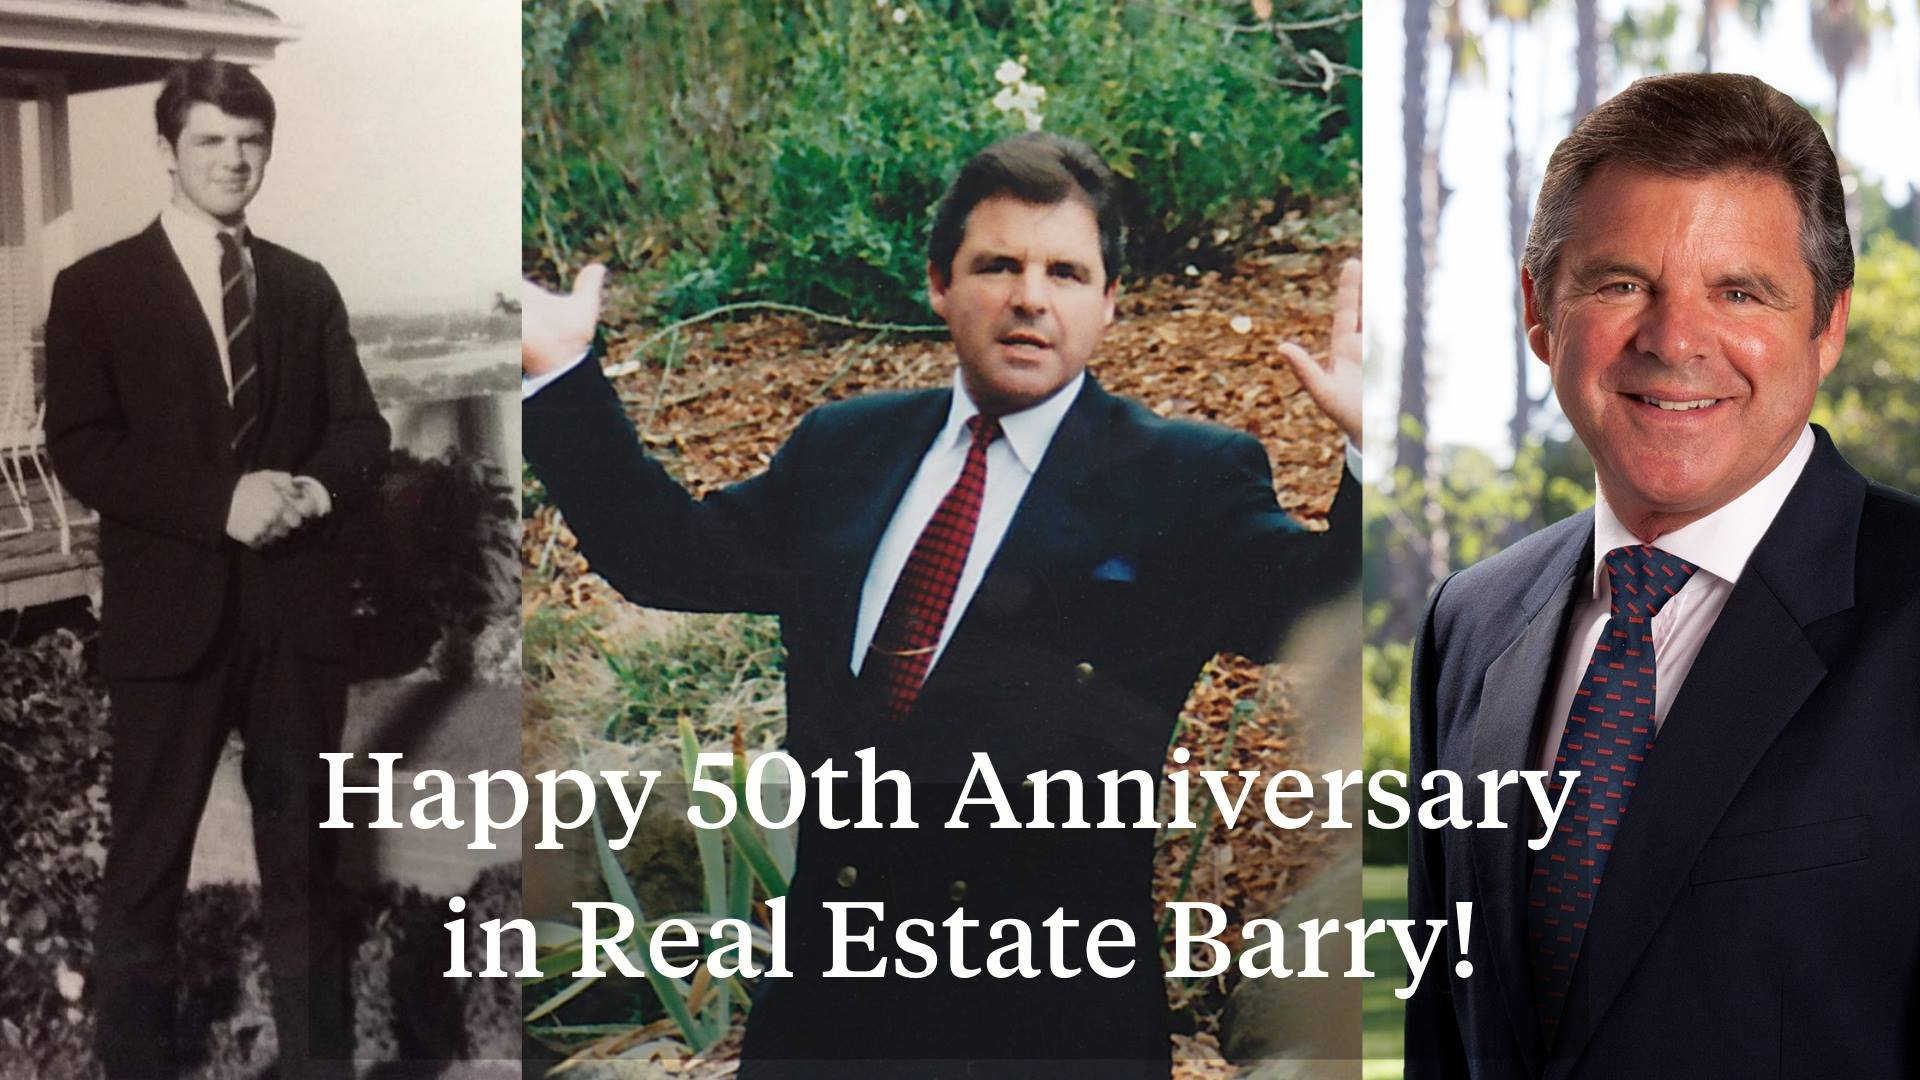 Happy 50th anniversary in real estate Barry!